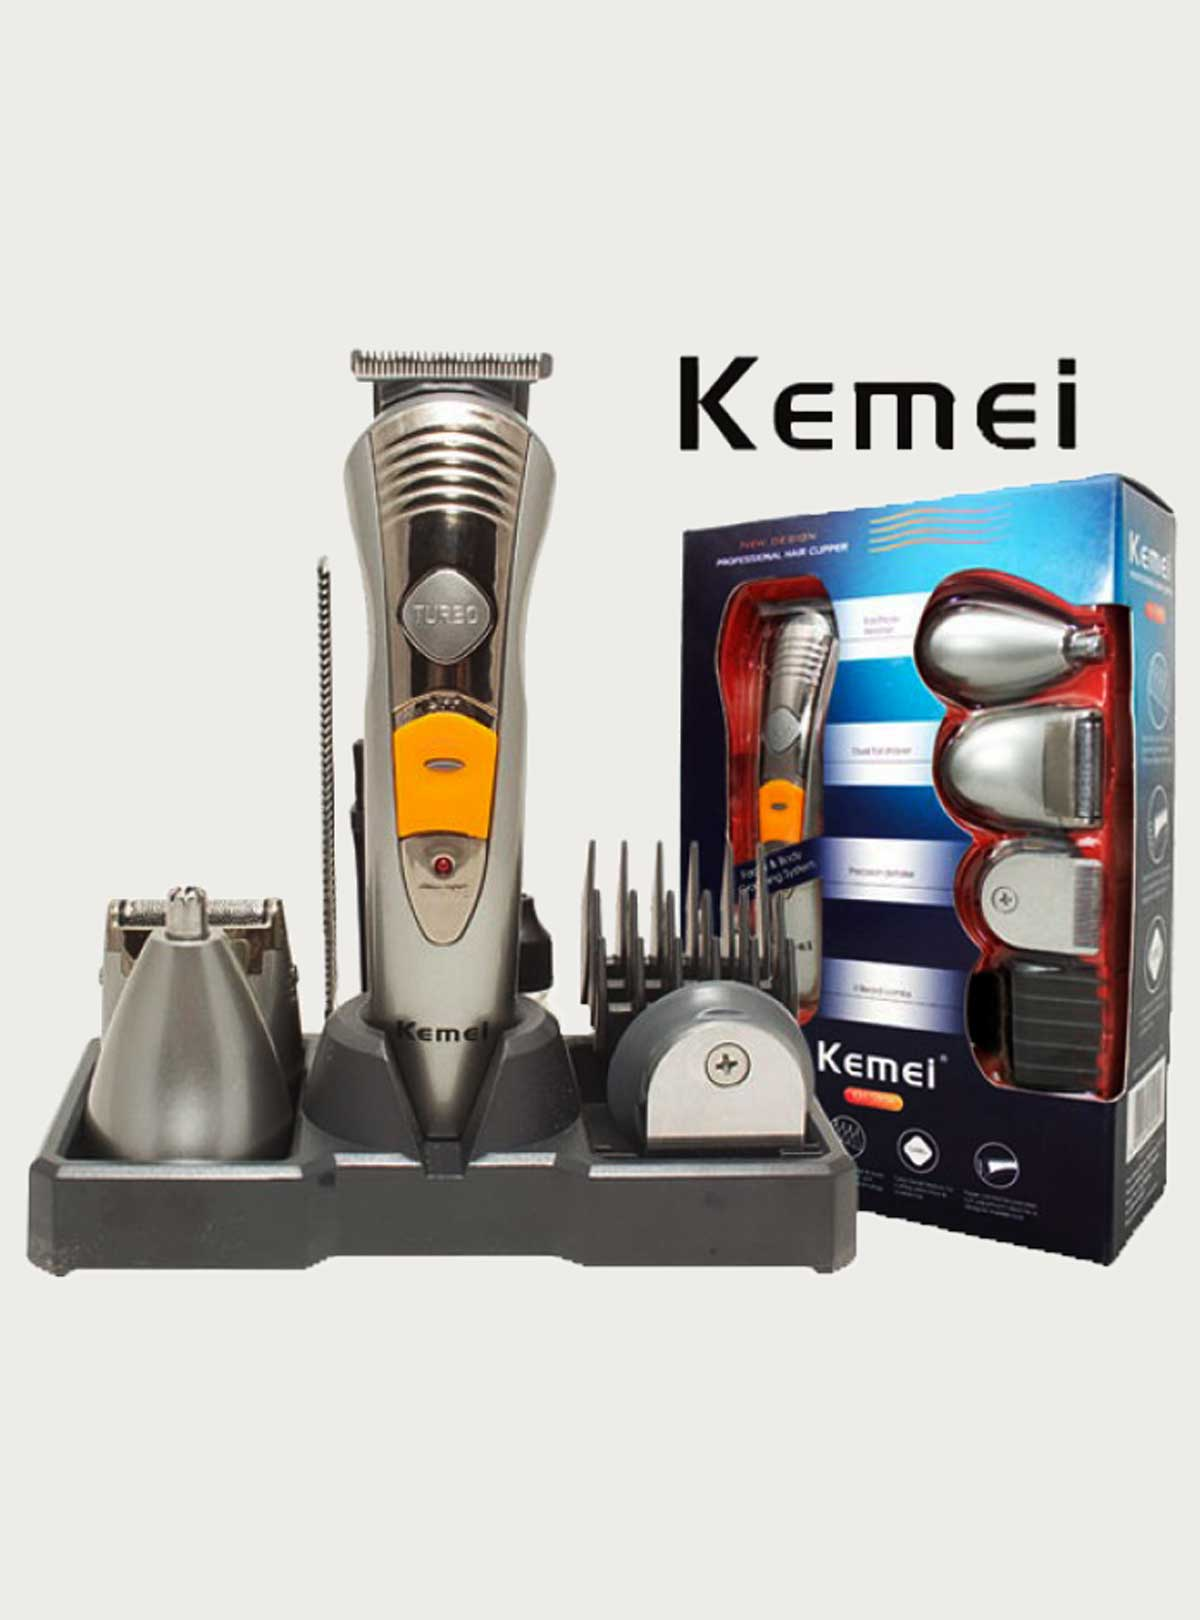 Kemei 7-in-1 Rechargeable Trimmer + Shaver